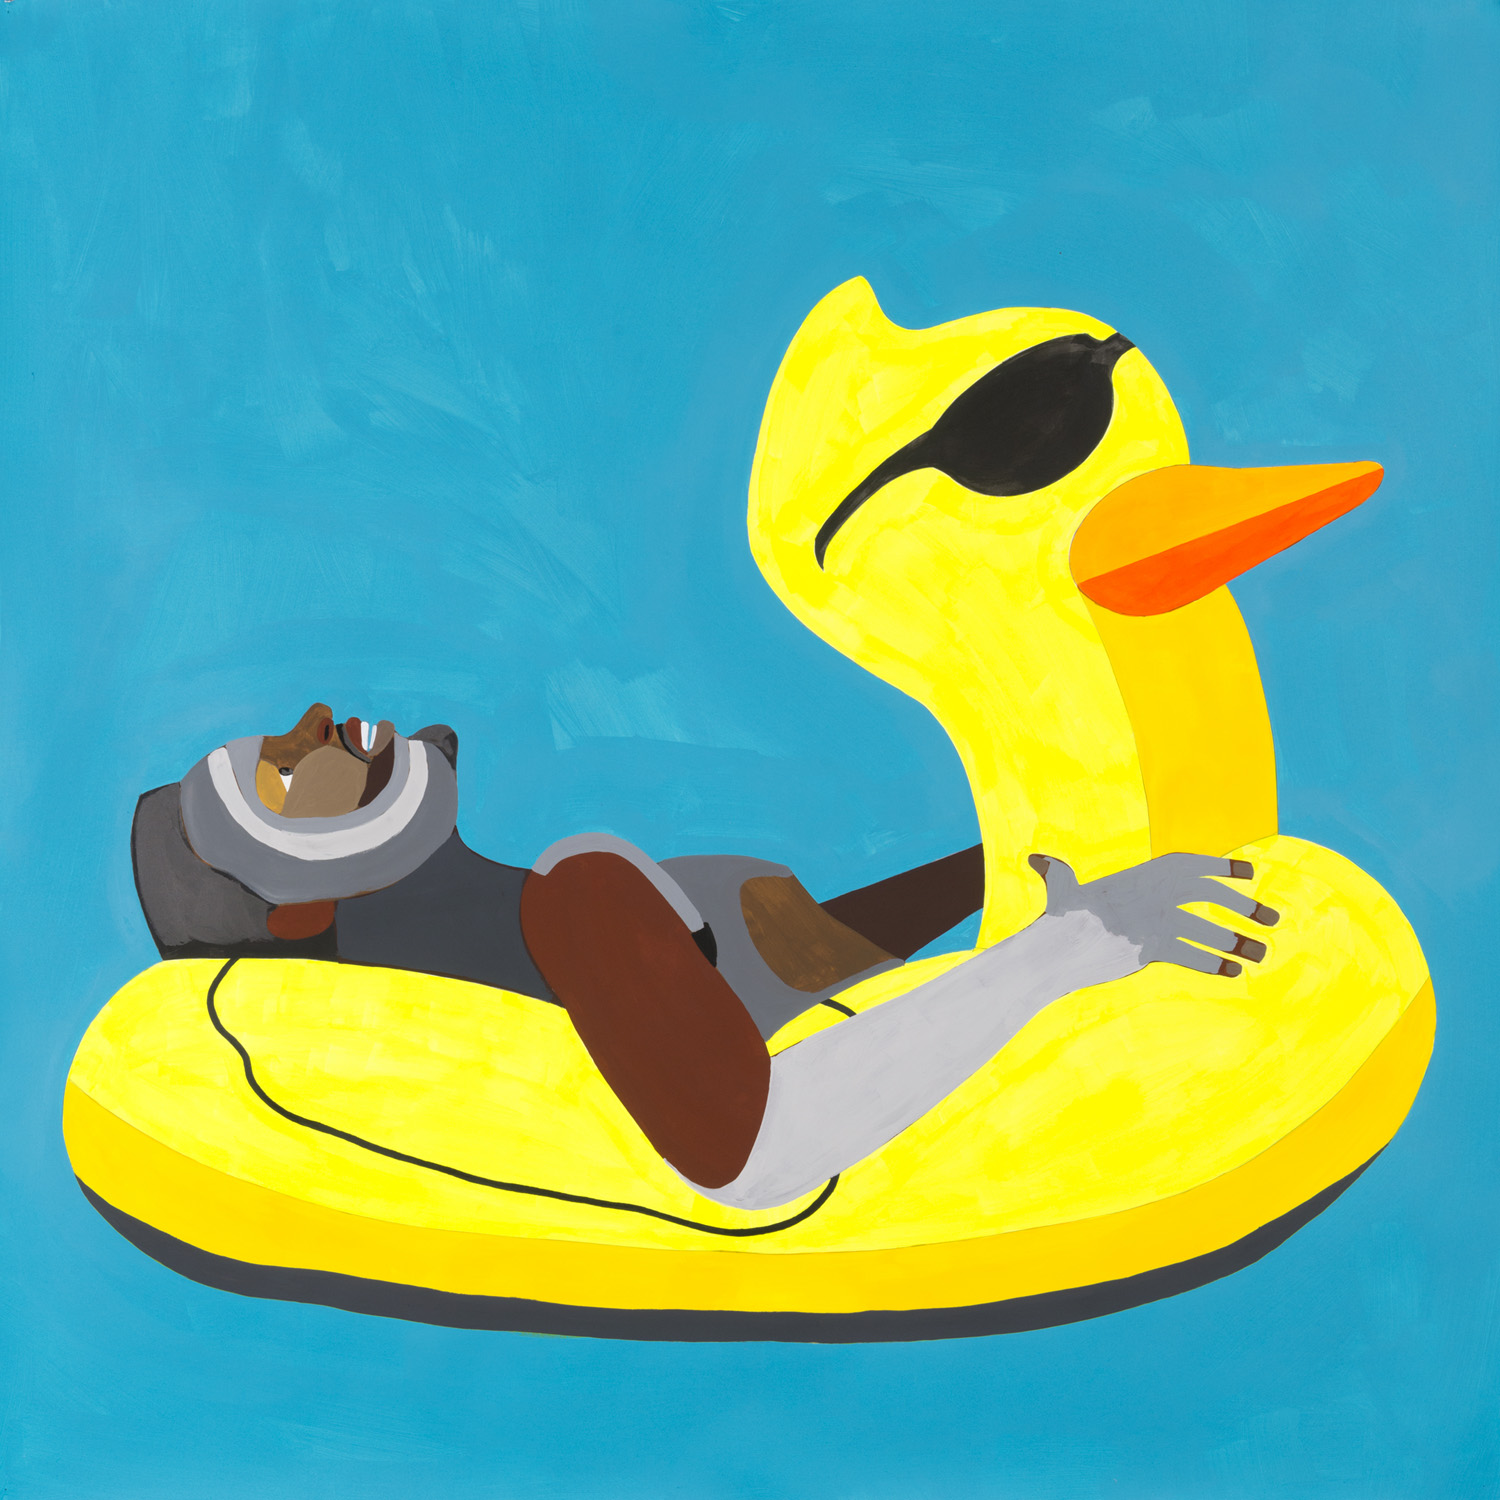 Floater 50 (ducky with glasses)